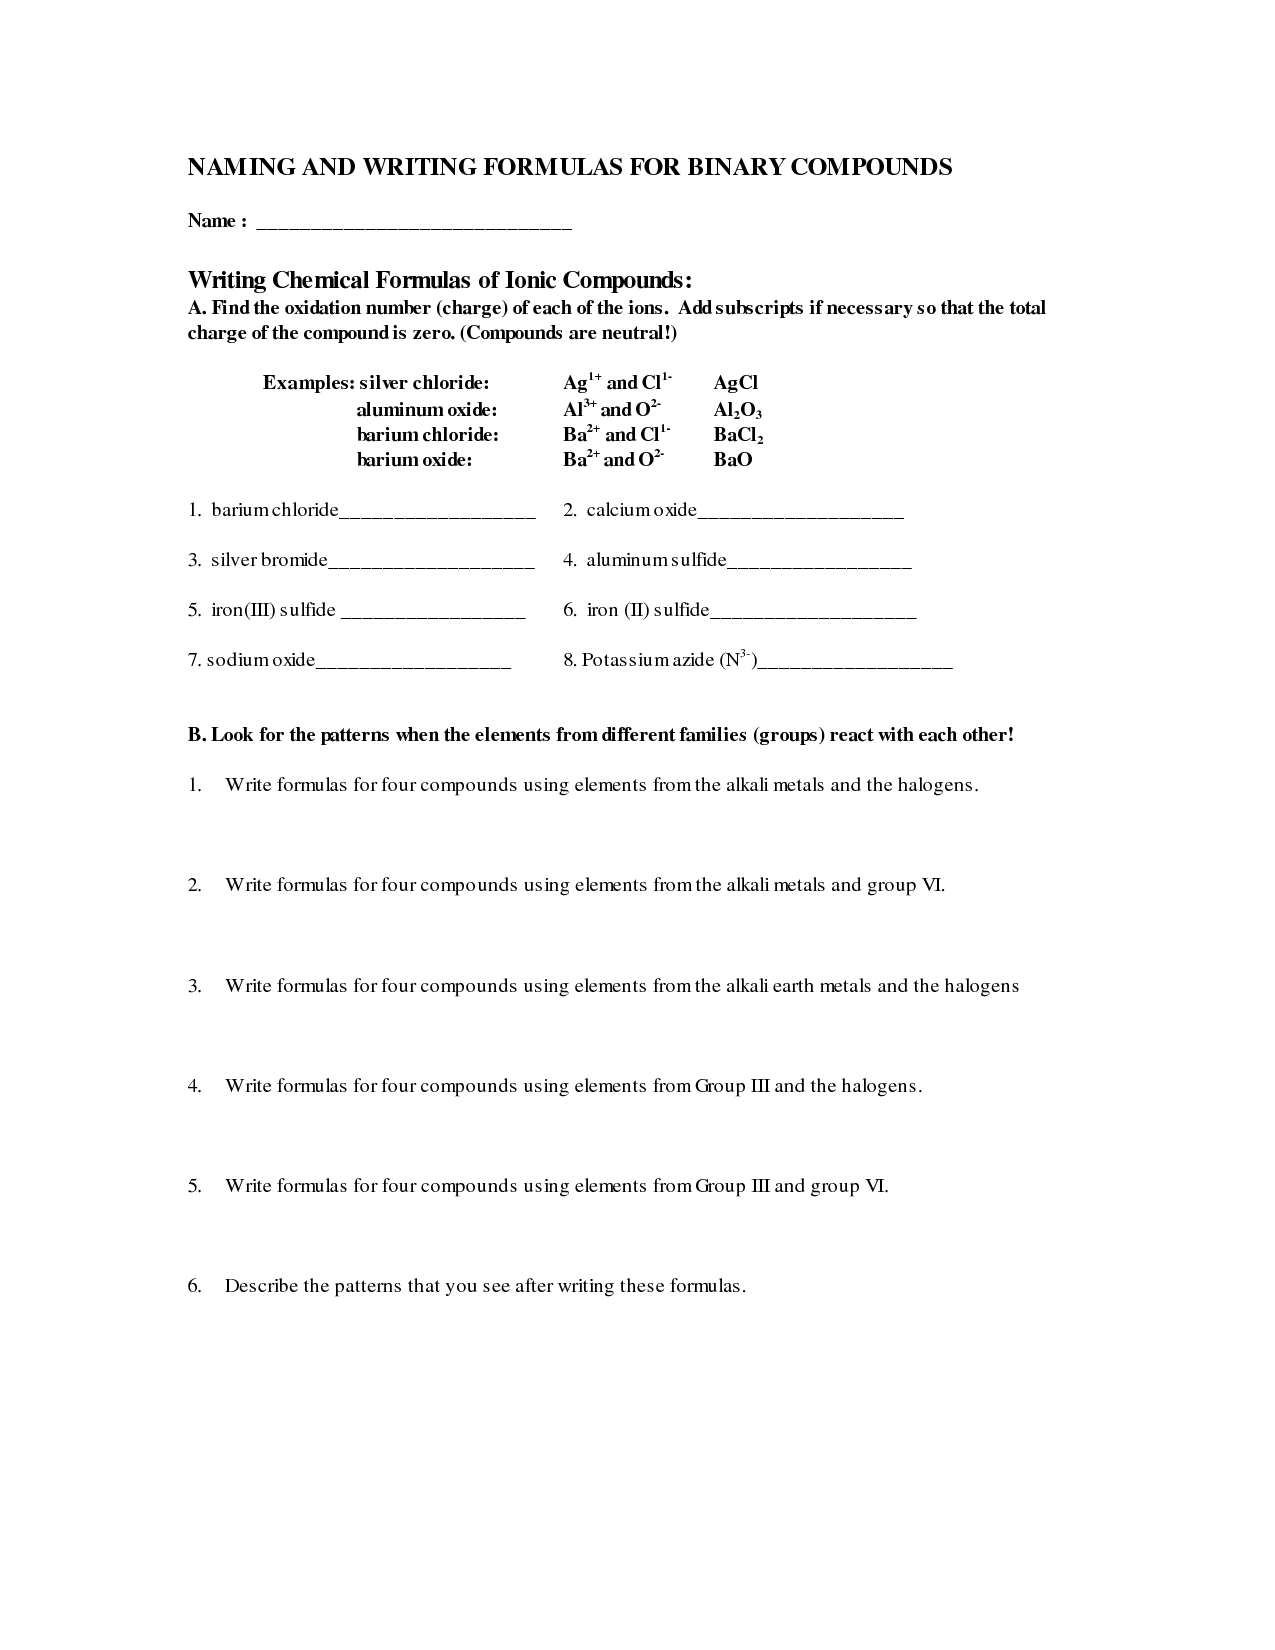 11 Best Images Of Writing And Naming Ionic Compounds Worksheet